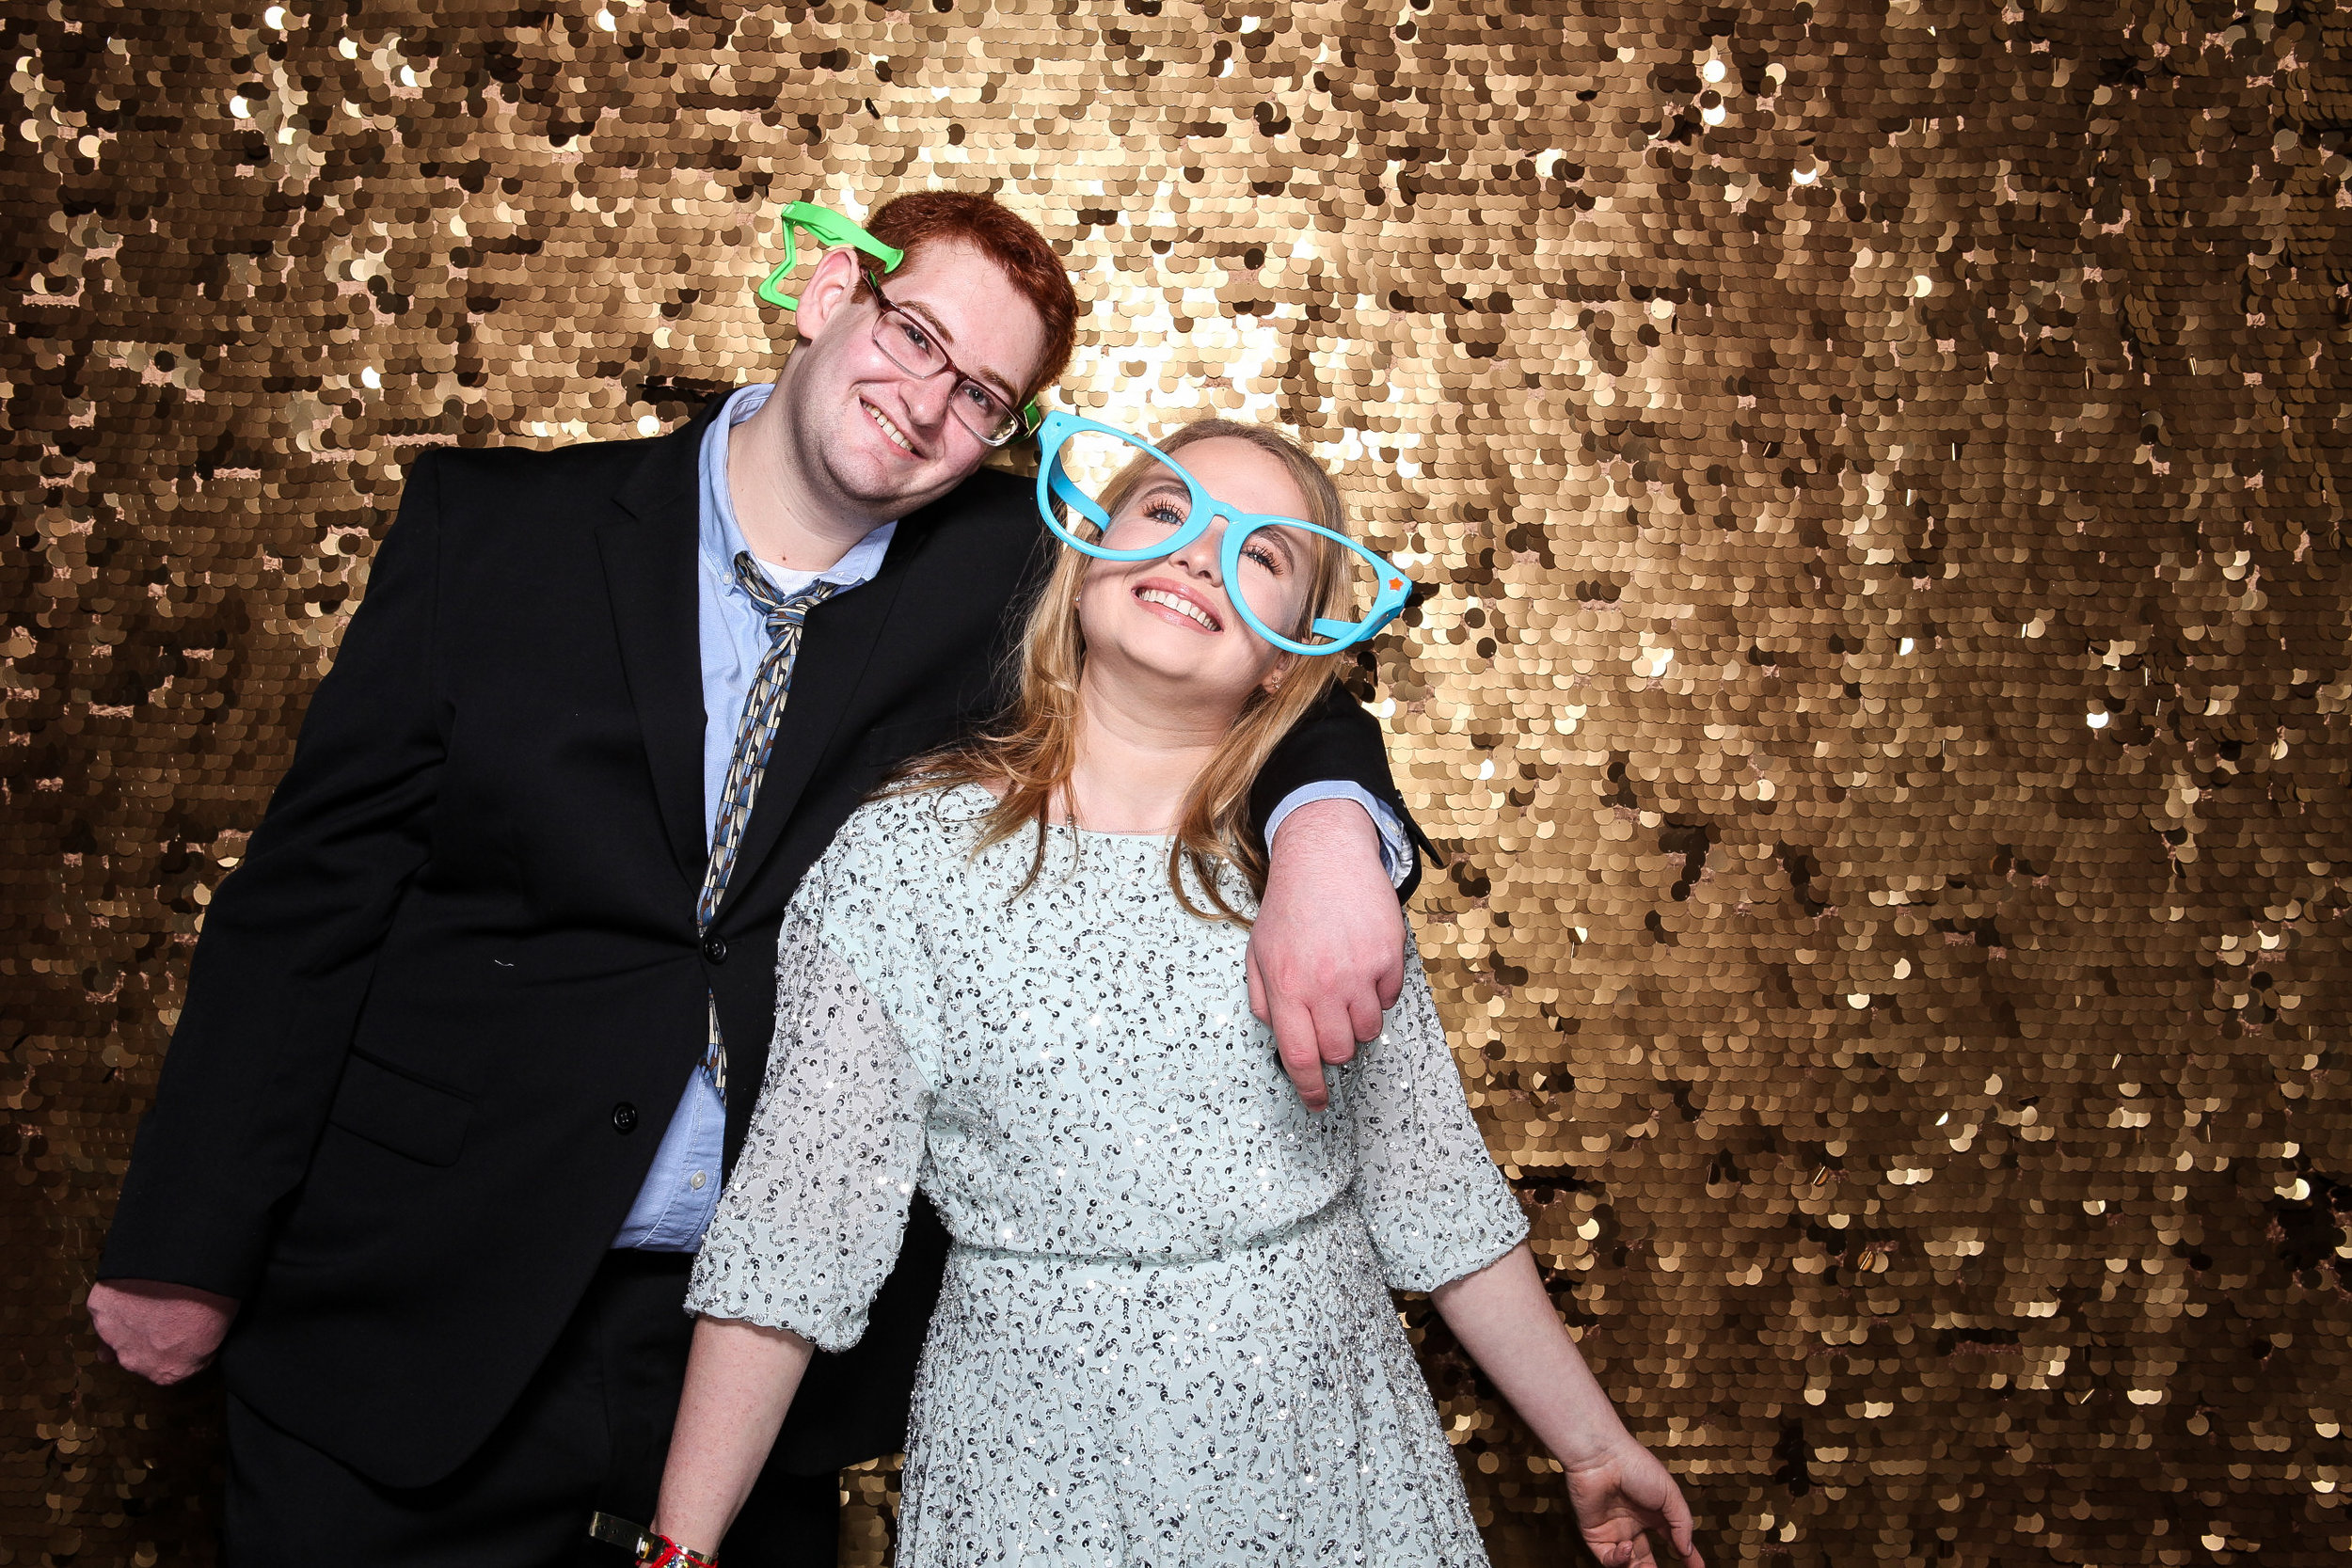 20190503_Adelphi_Senior_Formal-160.jpg